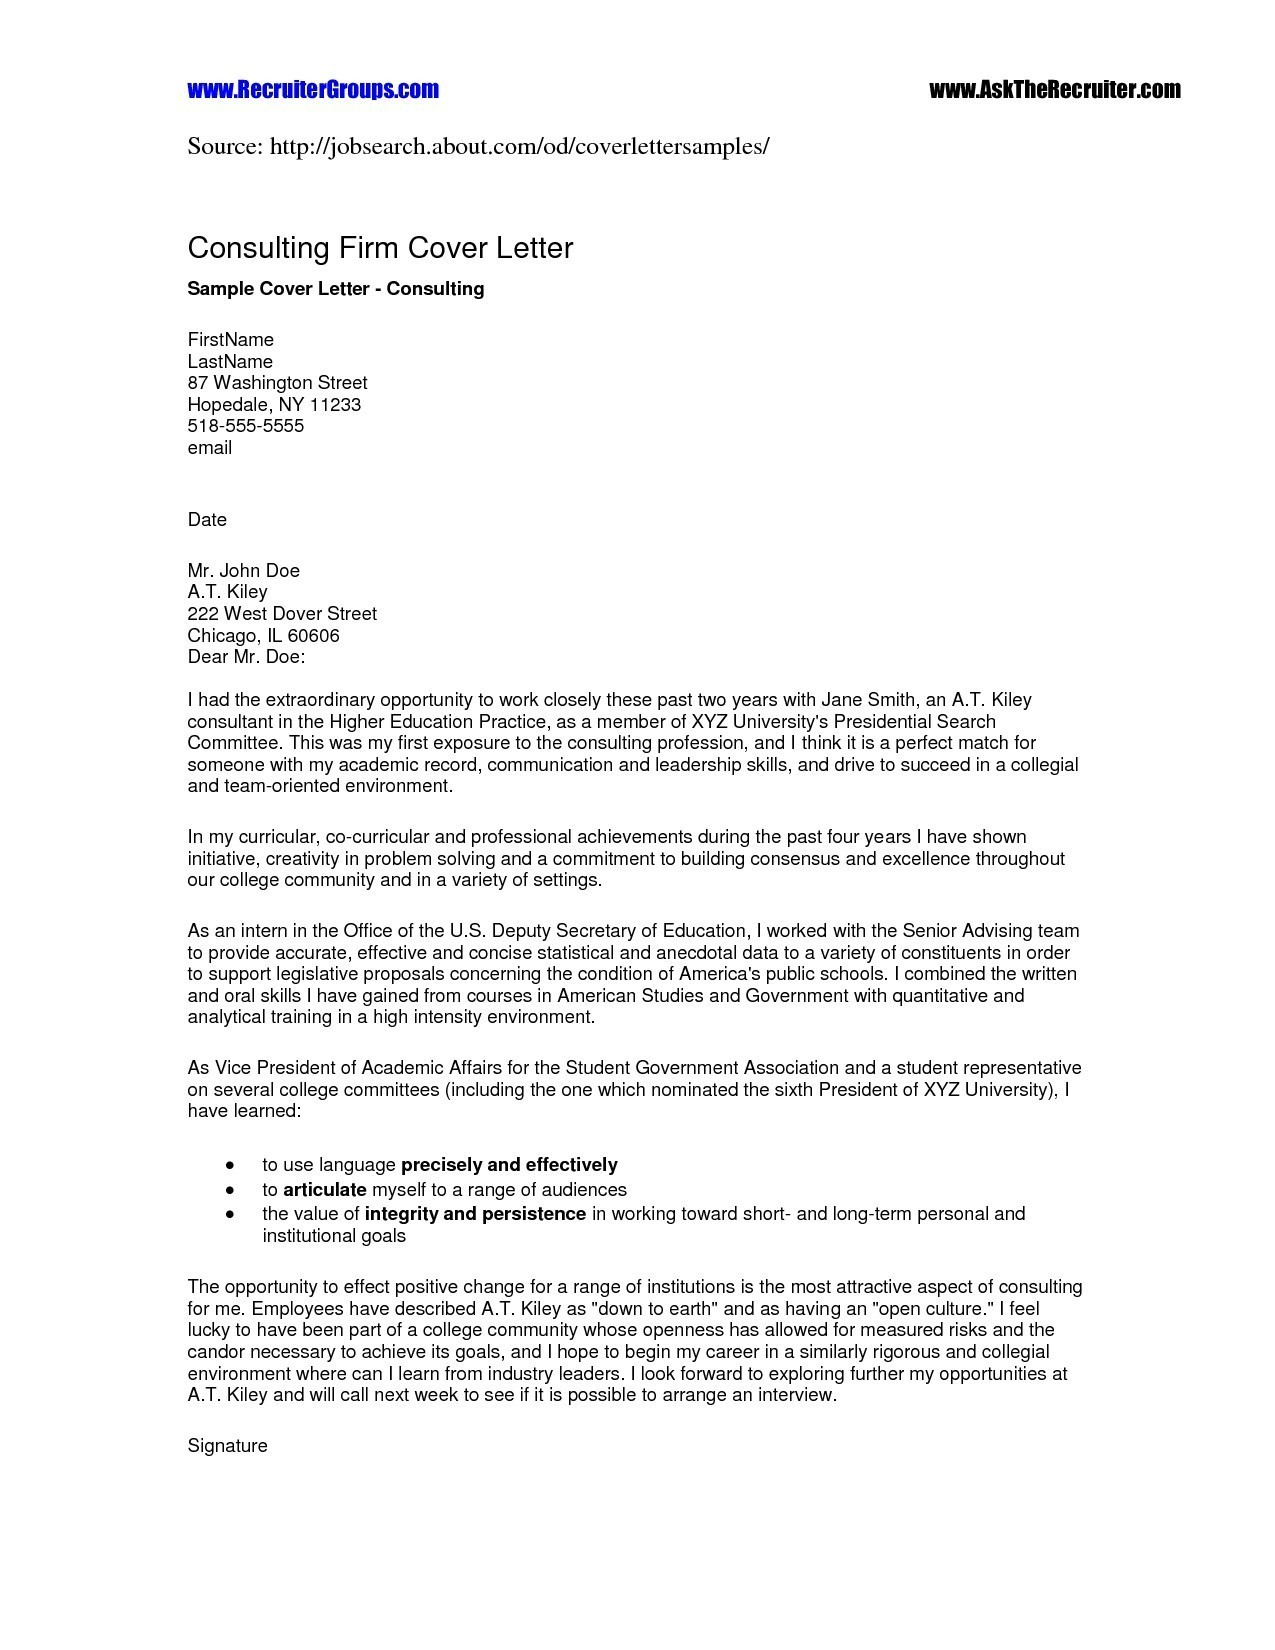 College Cover Letter Template - Job Application Letter format Template Copy Cover Letter Template Hr